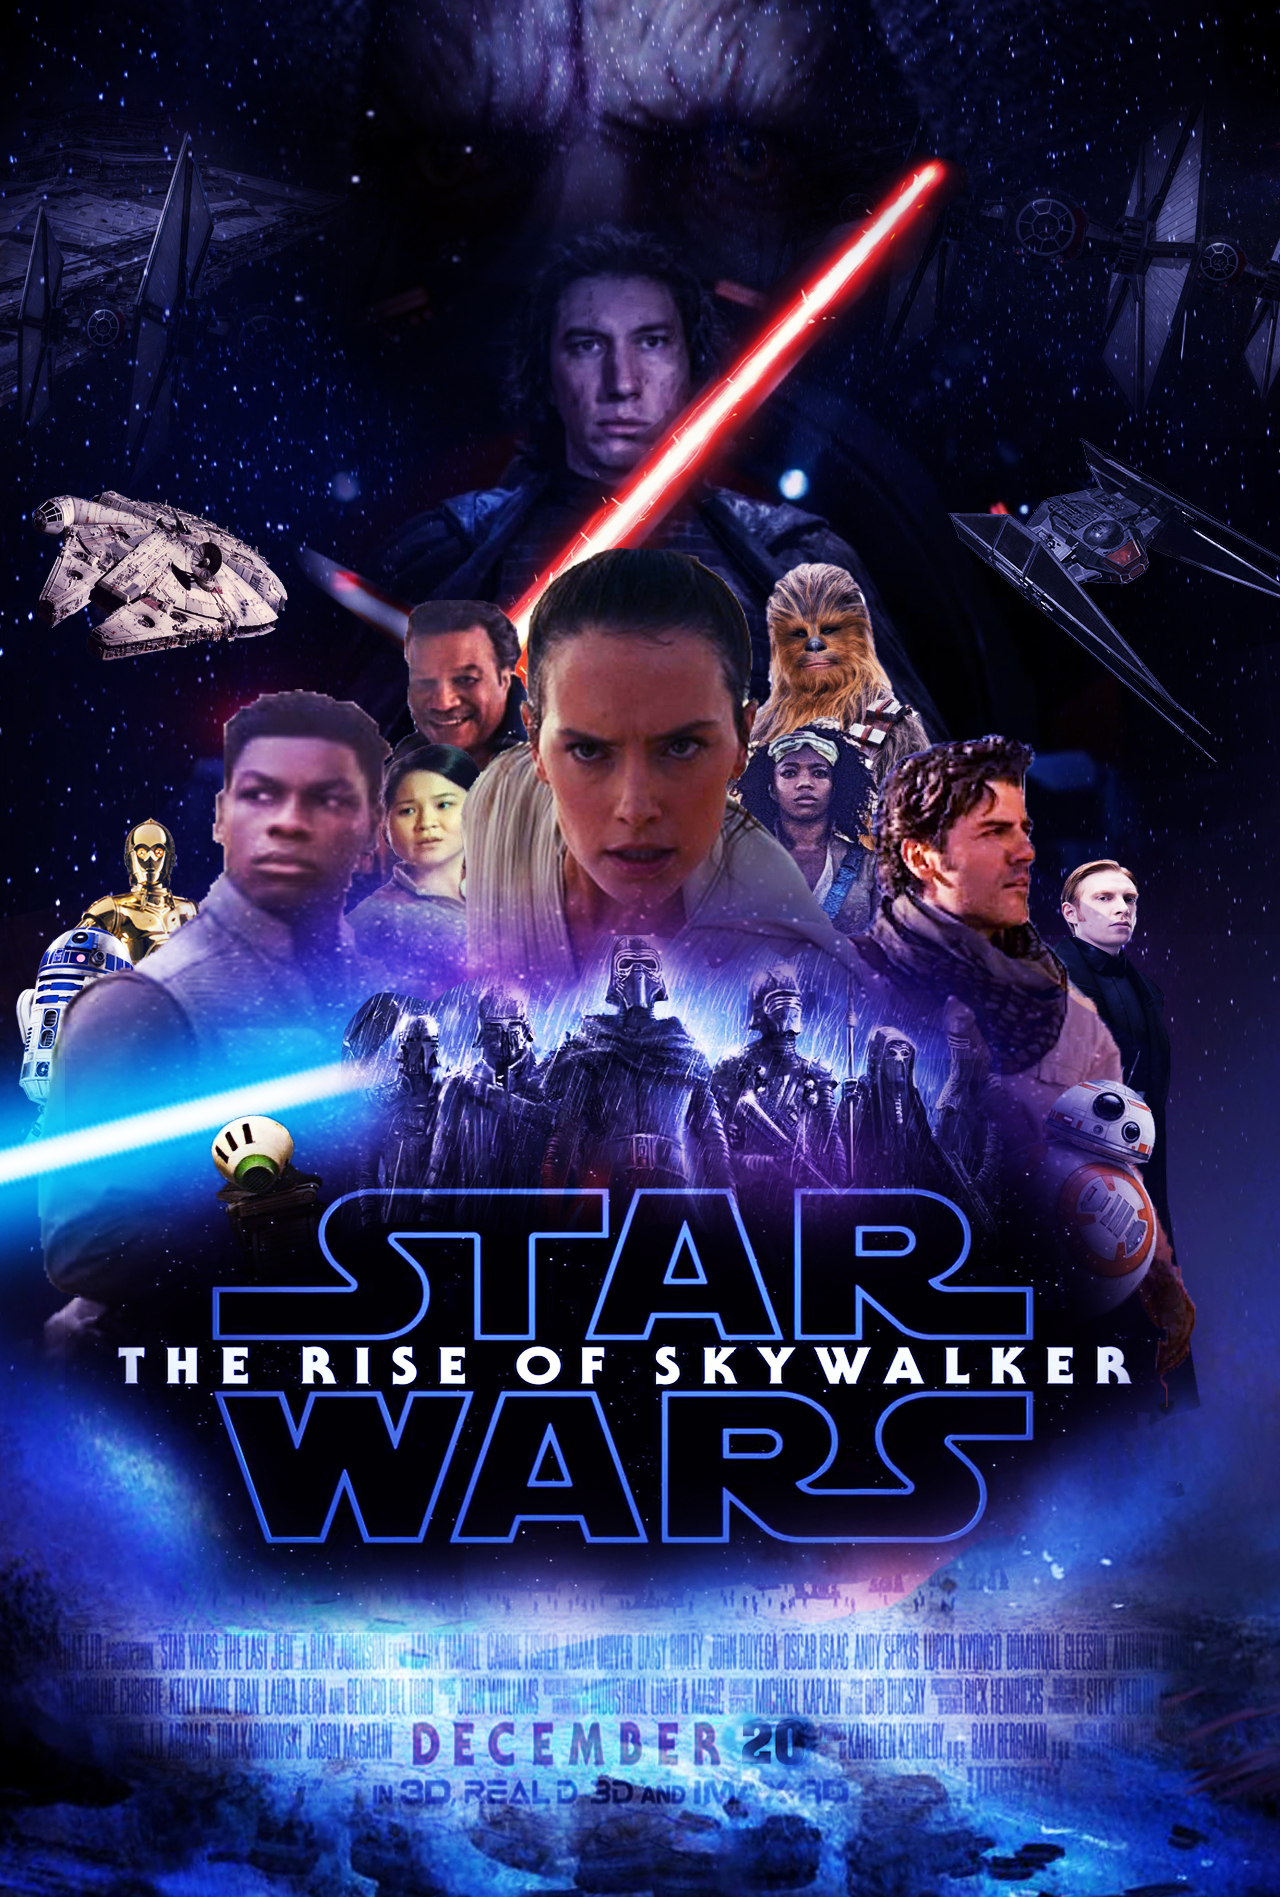 Star Wars The Rise Of Skywalker Poster By The Dark Mamba 995 On